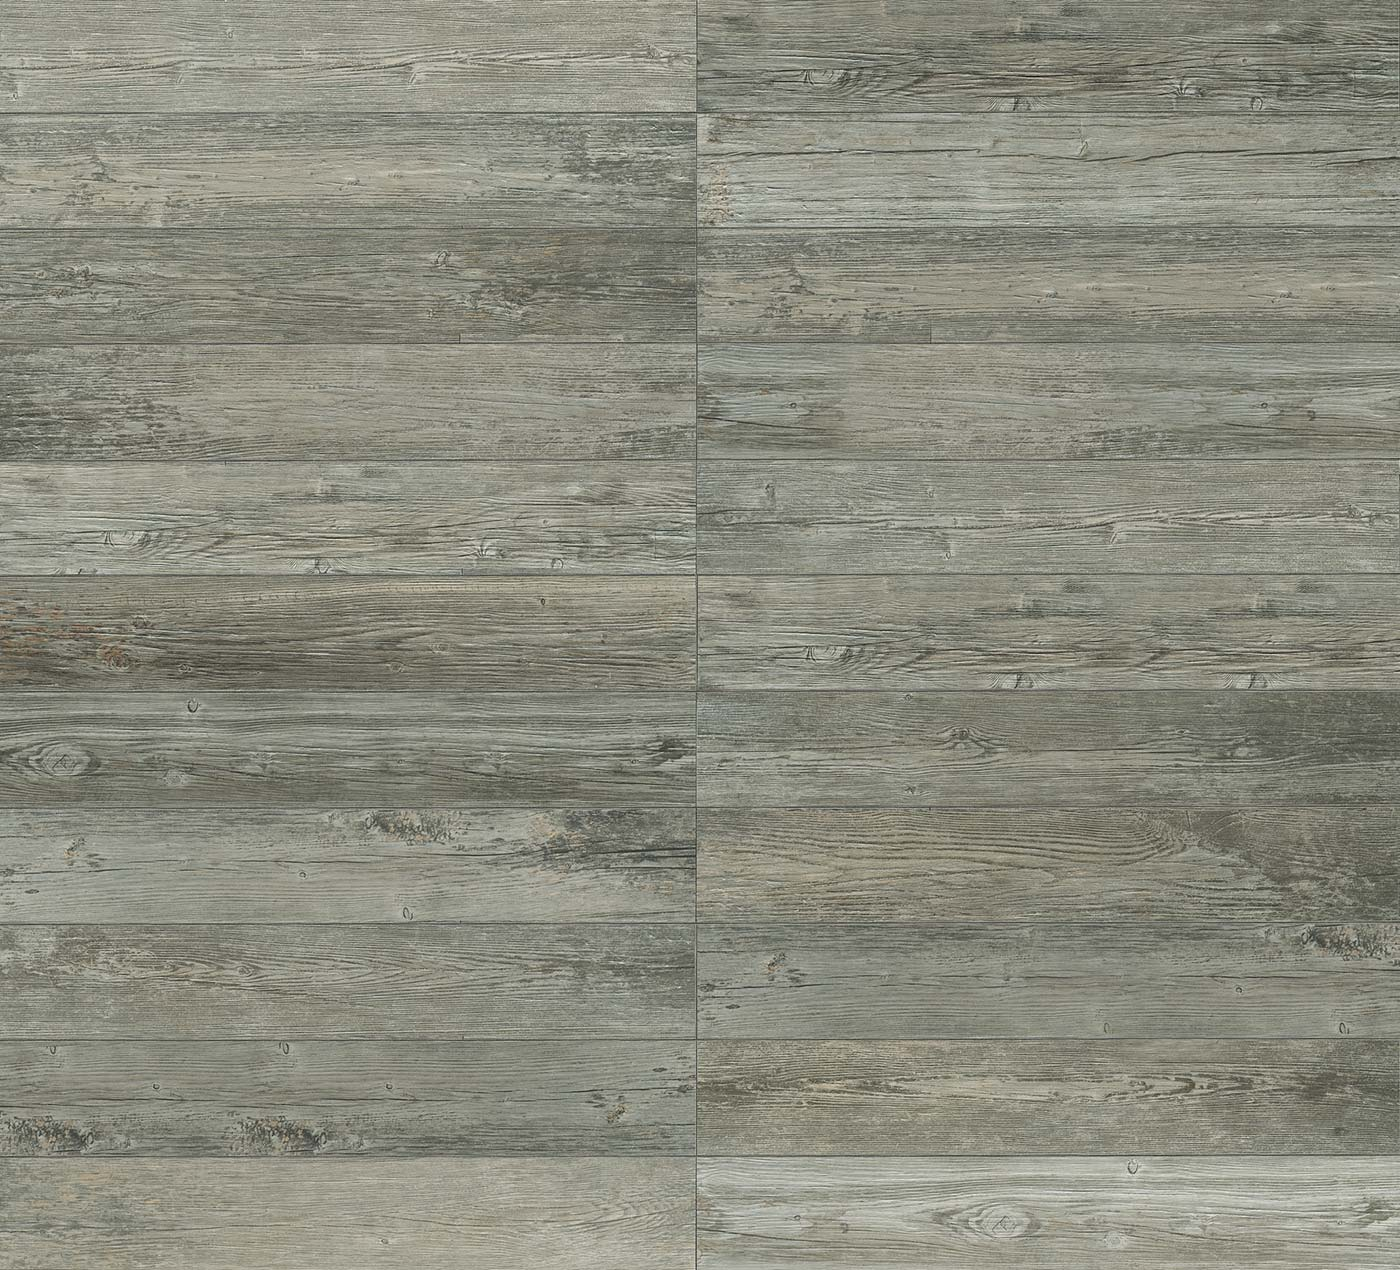 Cerim Wood Essense Silver 24x96,3